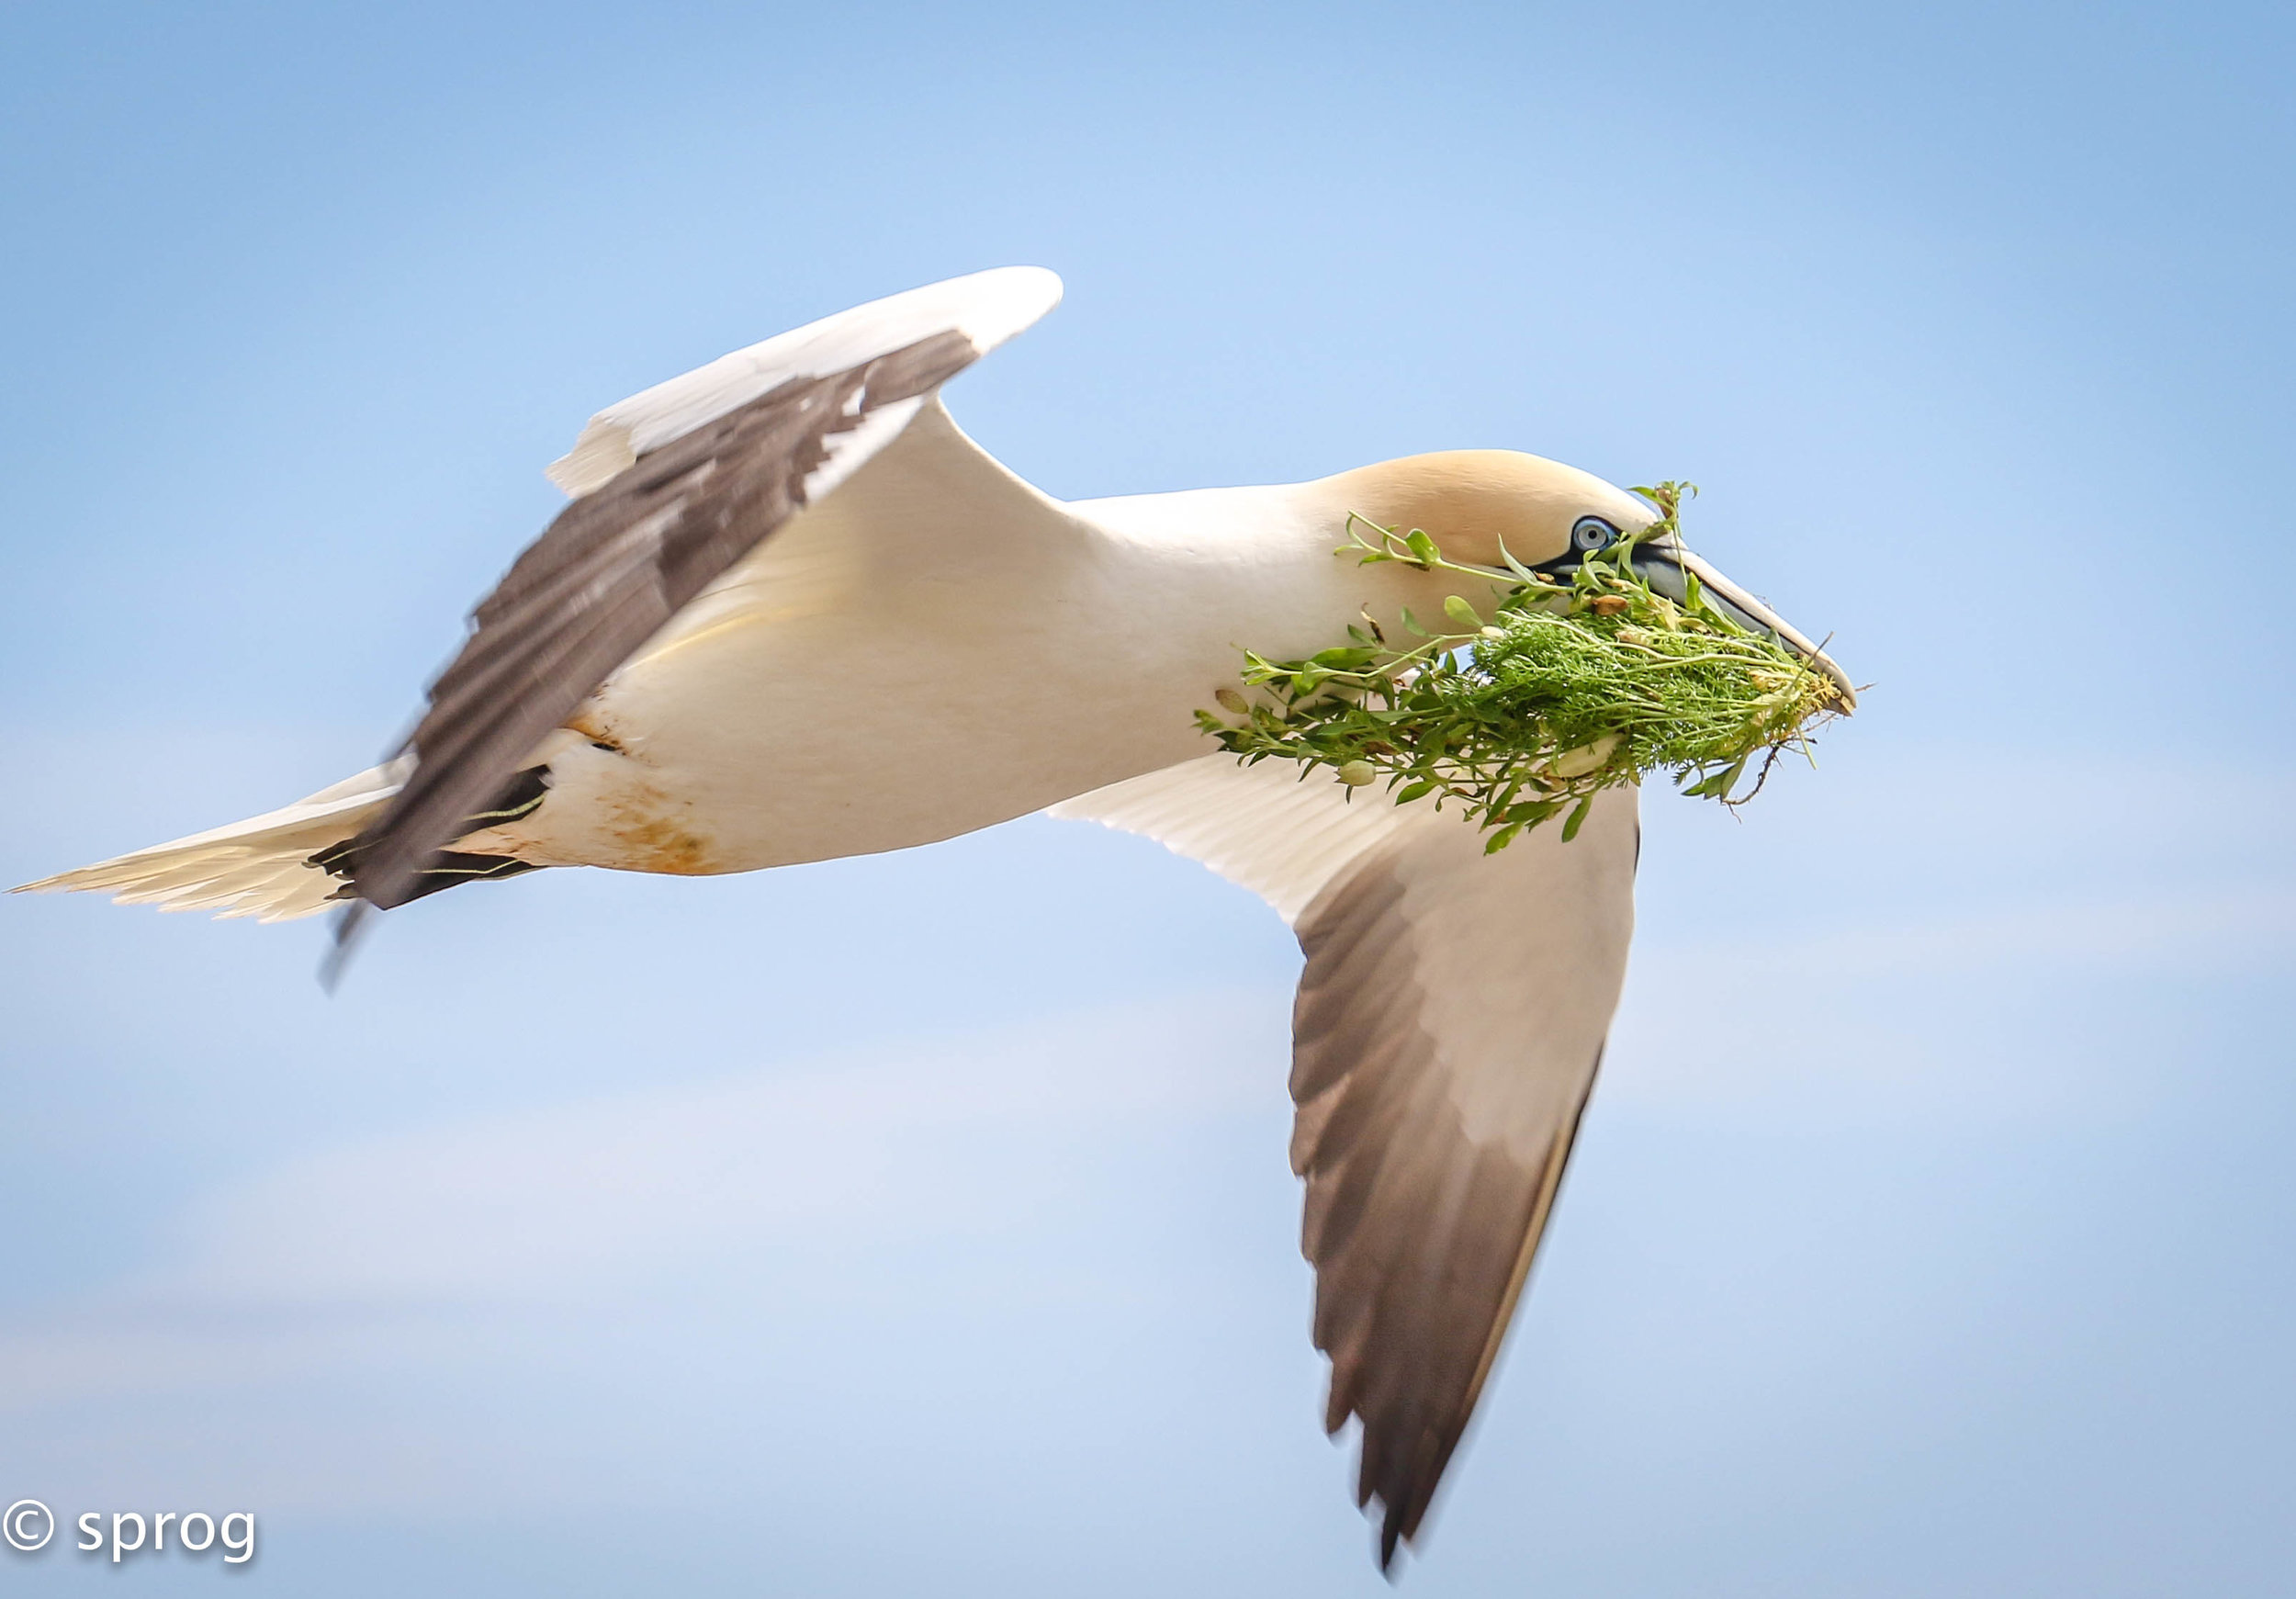 Gannet, Saltee Islands. Winning Image Irish Biodiversity Photographer of the year 2017.